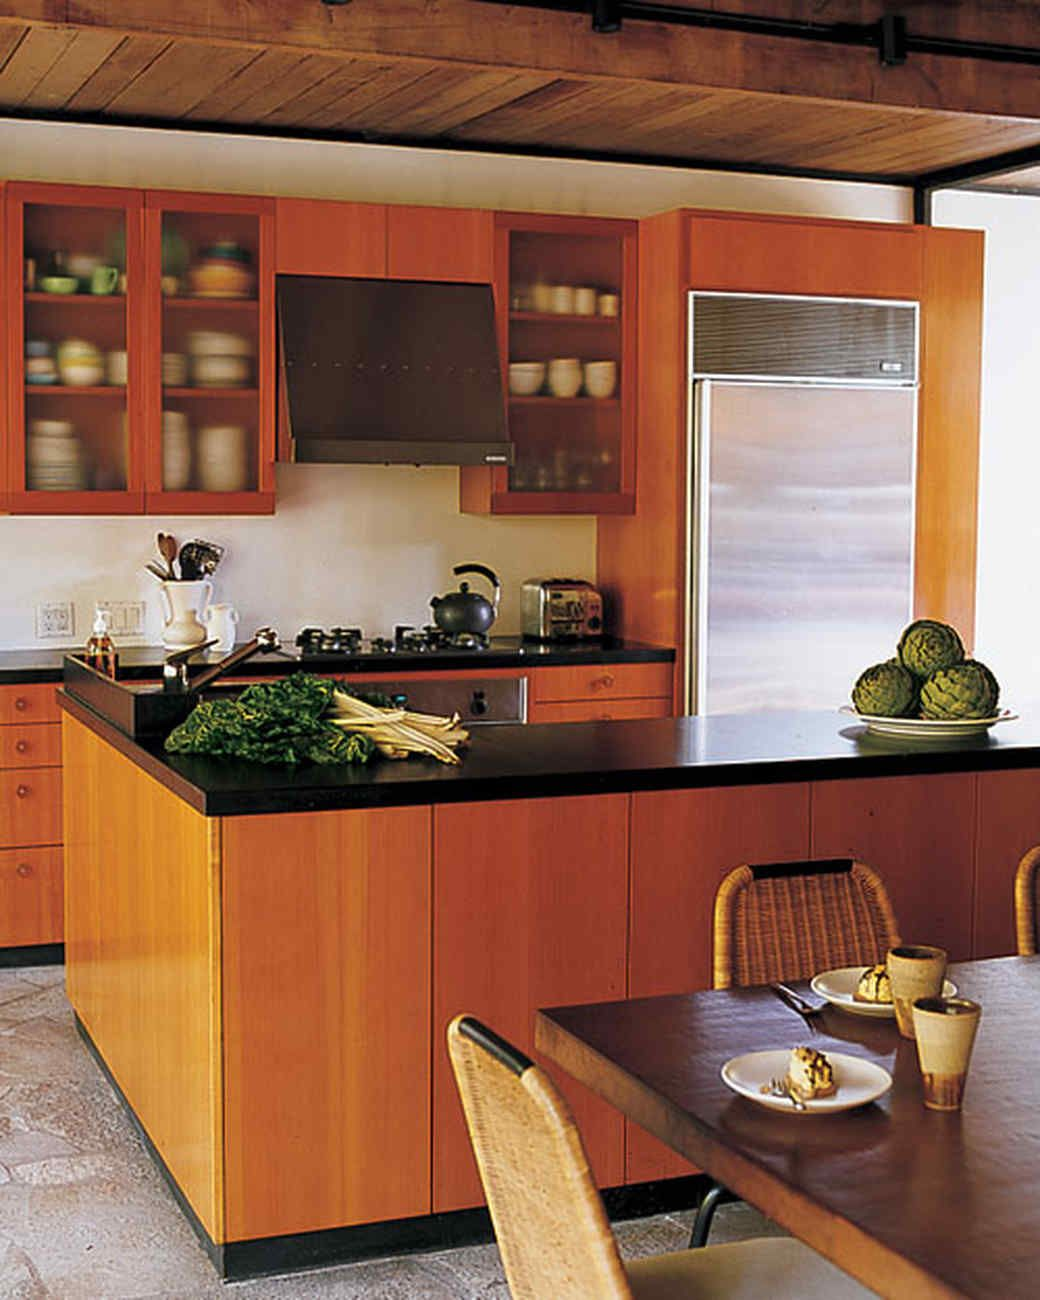 20 Beautiful Functional Kitchens To Inspire Your Own With Images